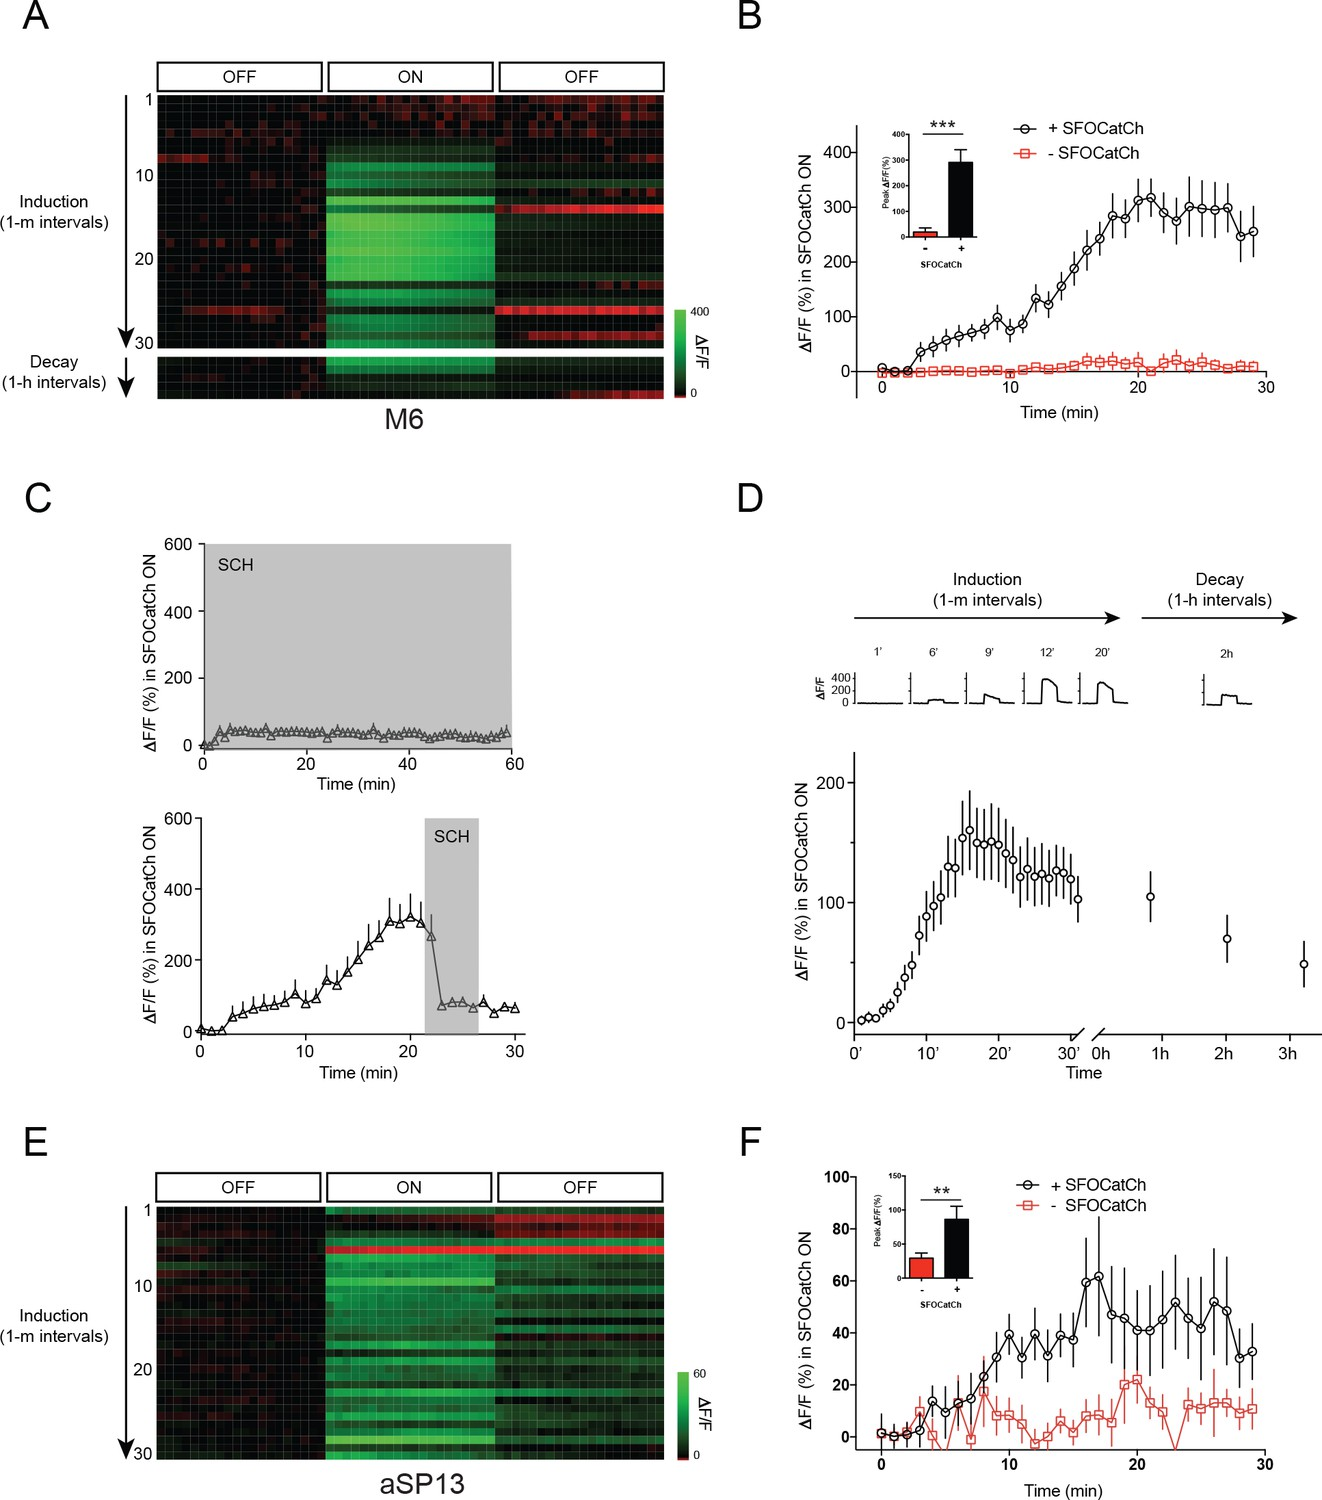 Persistent Activity In A Recurrent Circuit Underlies Courtship Digest Electronic Circuits Projects Community Repetitive Stimulation Of Mb Potentiates To M6 Transmission